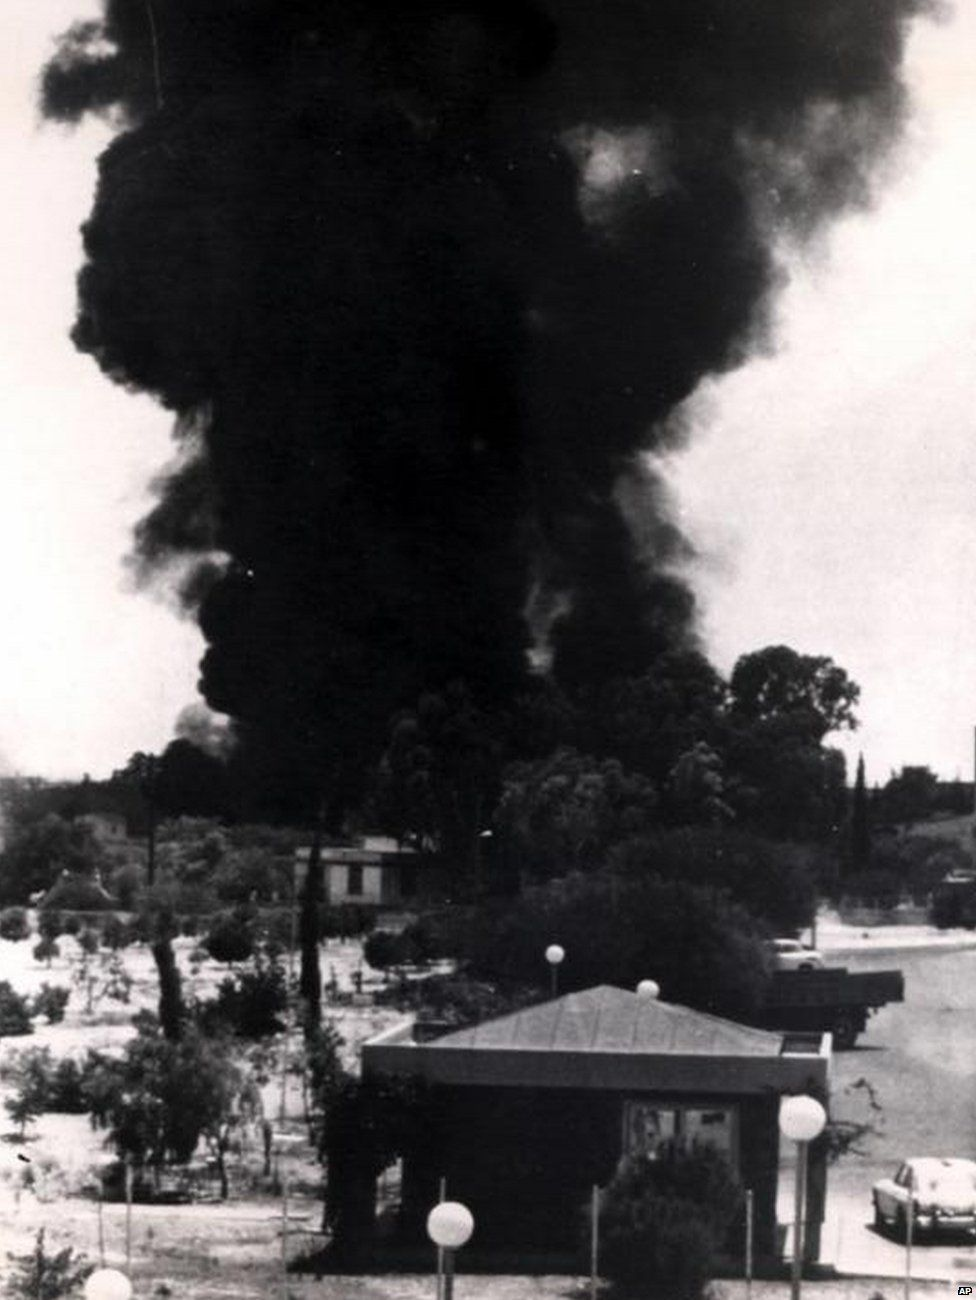 An air strike on Nicosia, Cyprus, by the Turkish Air Force in 1974